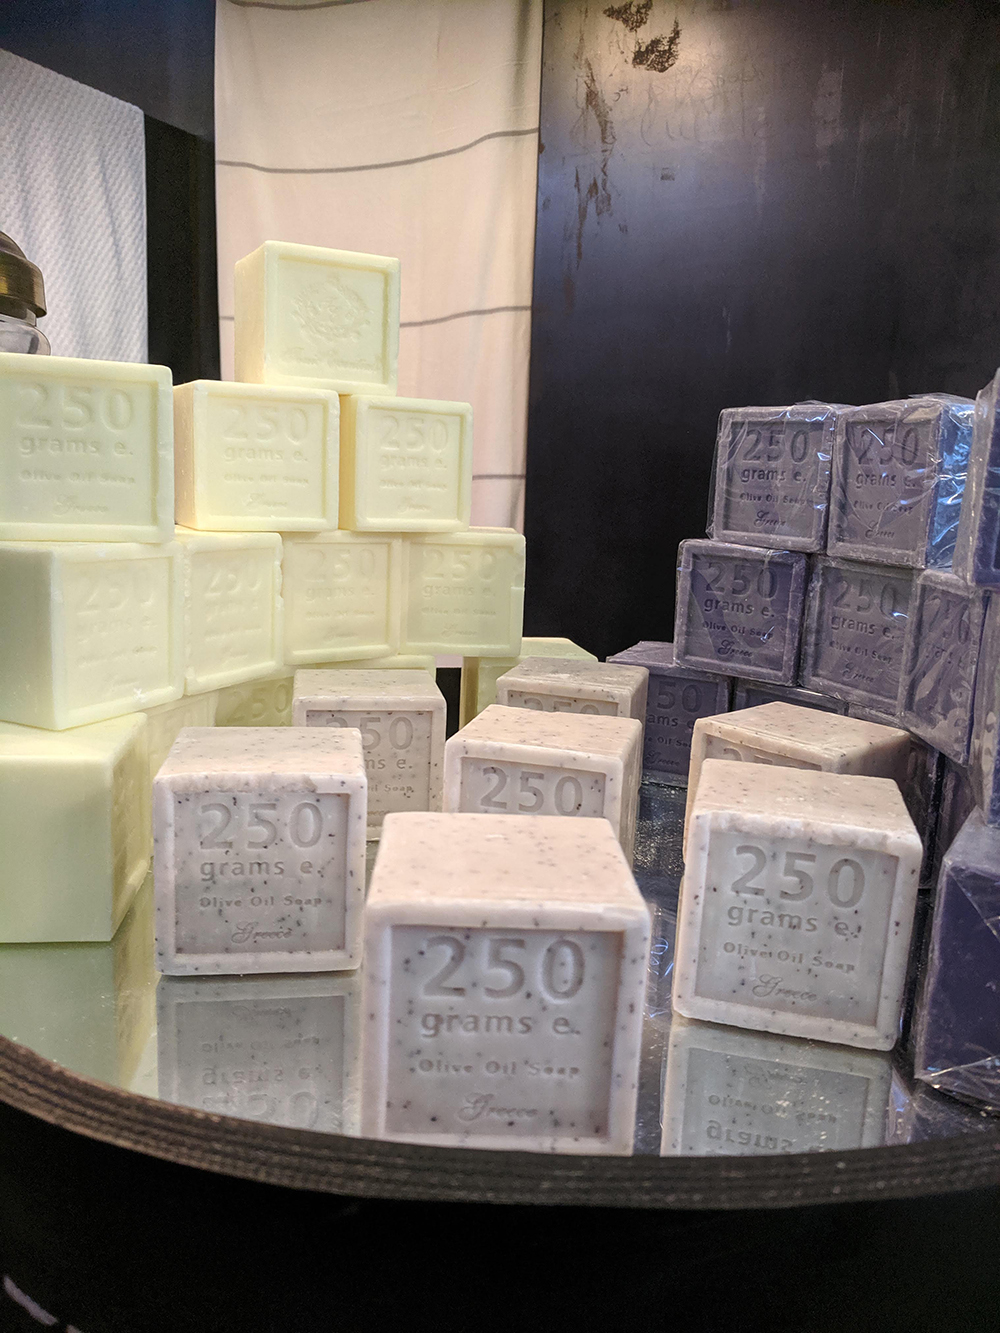 Olive oil soaps are among the items available for purchase in the spa's retail area.